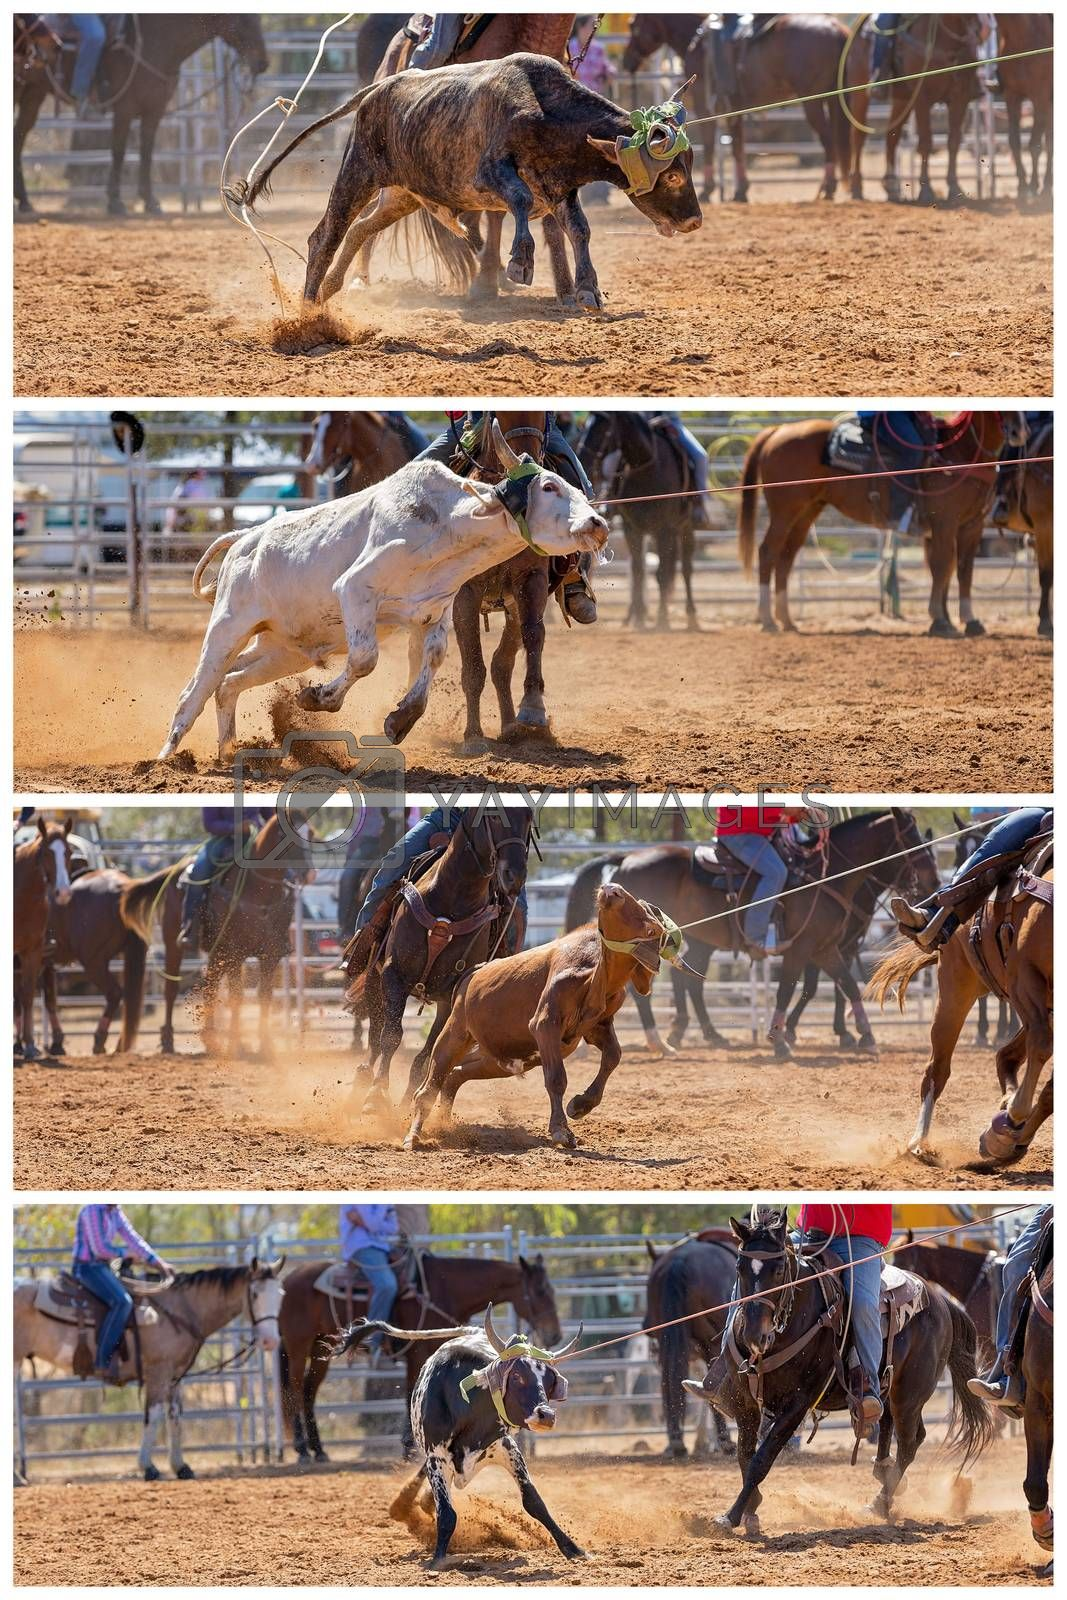 Collage of images of calves being lassoed by cowboys on horseback in a dusty country rodeo